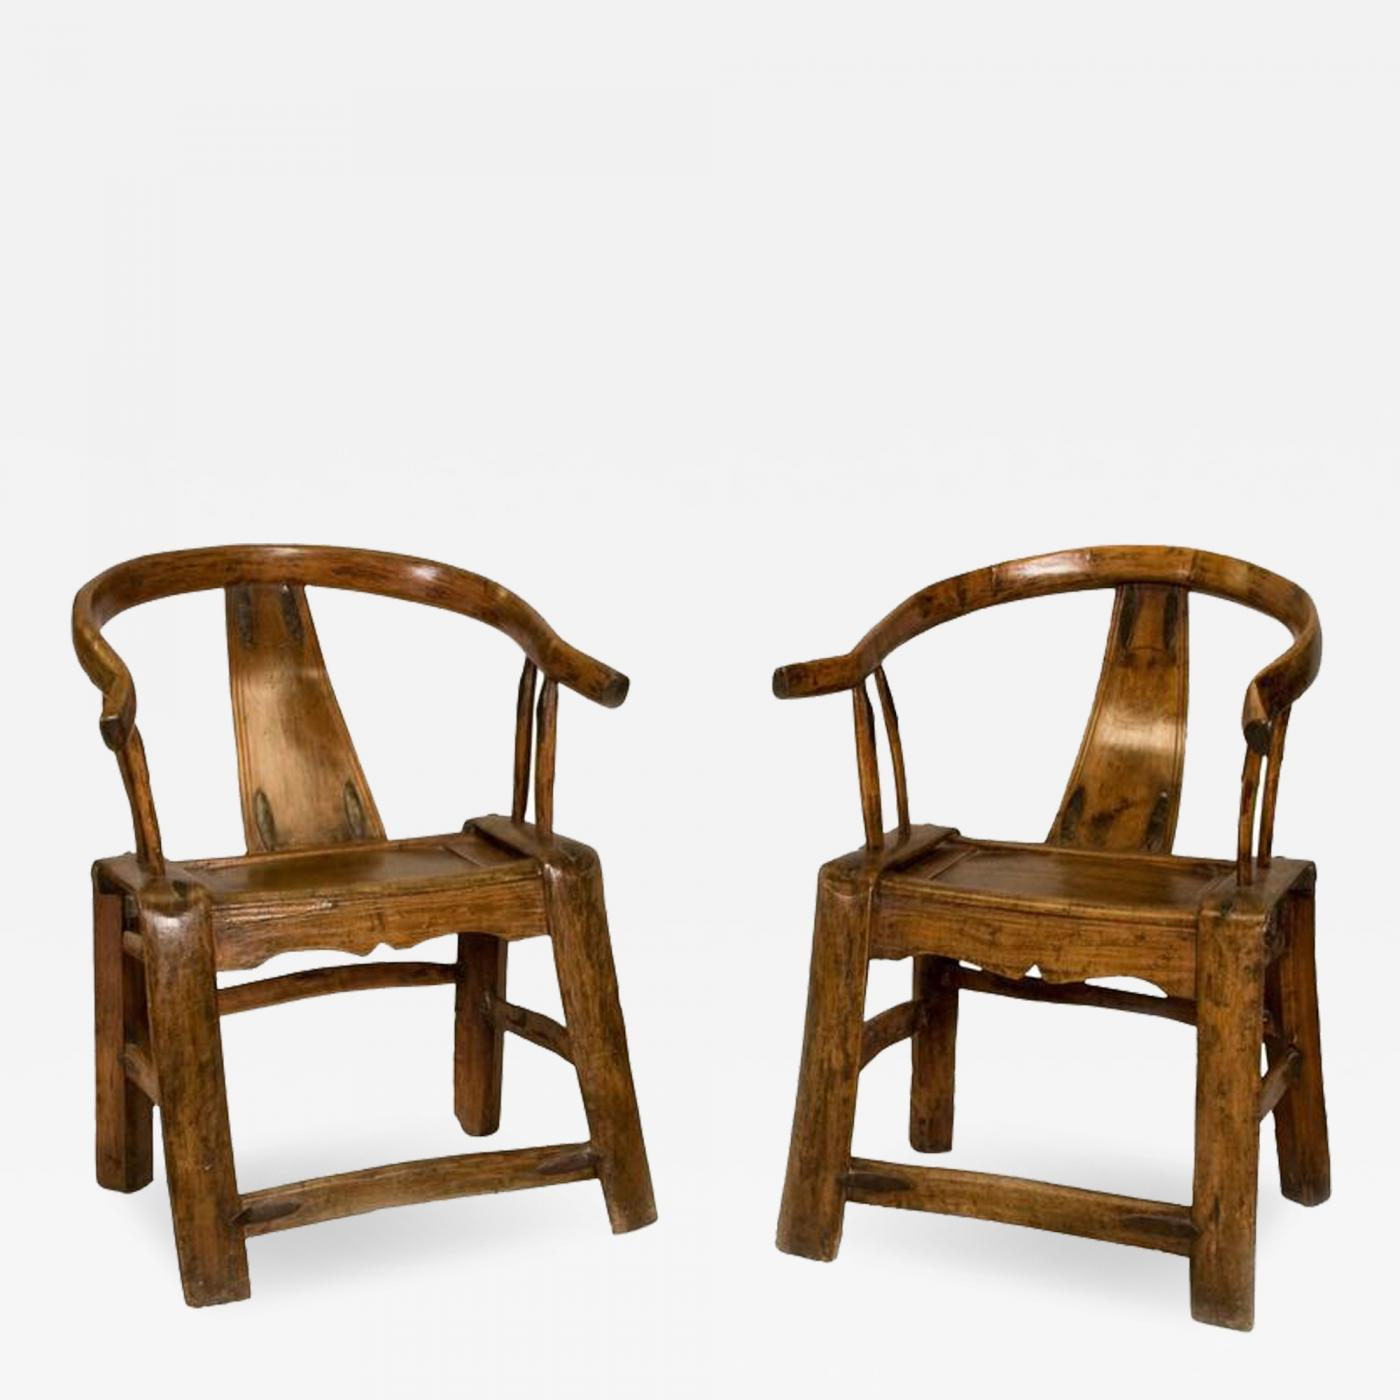 ... Chinese Yoke Back Chairs. More Images Want More Images?